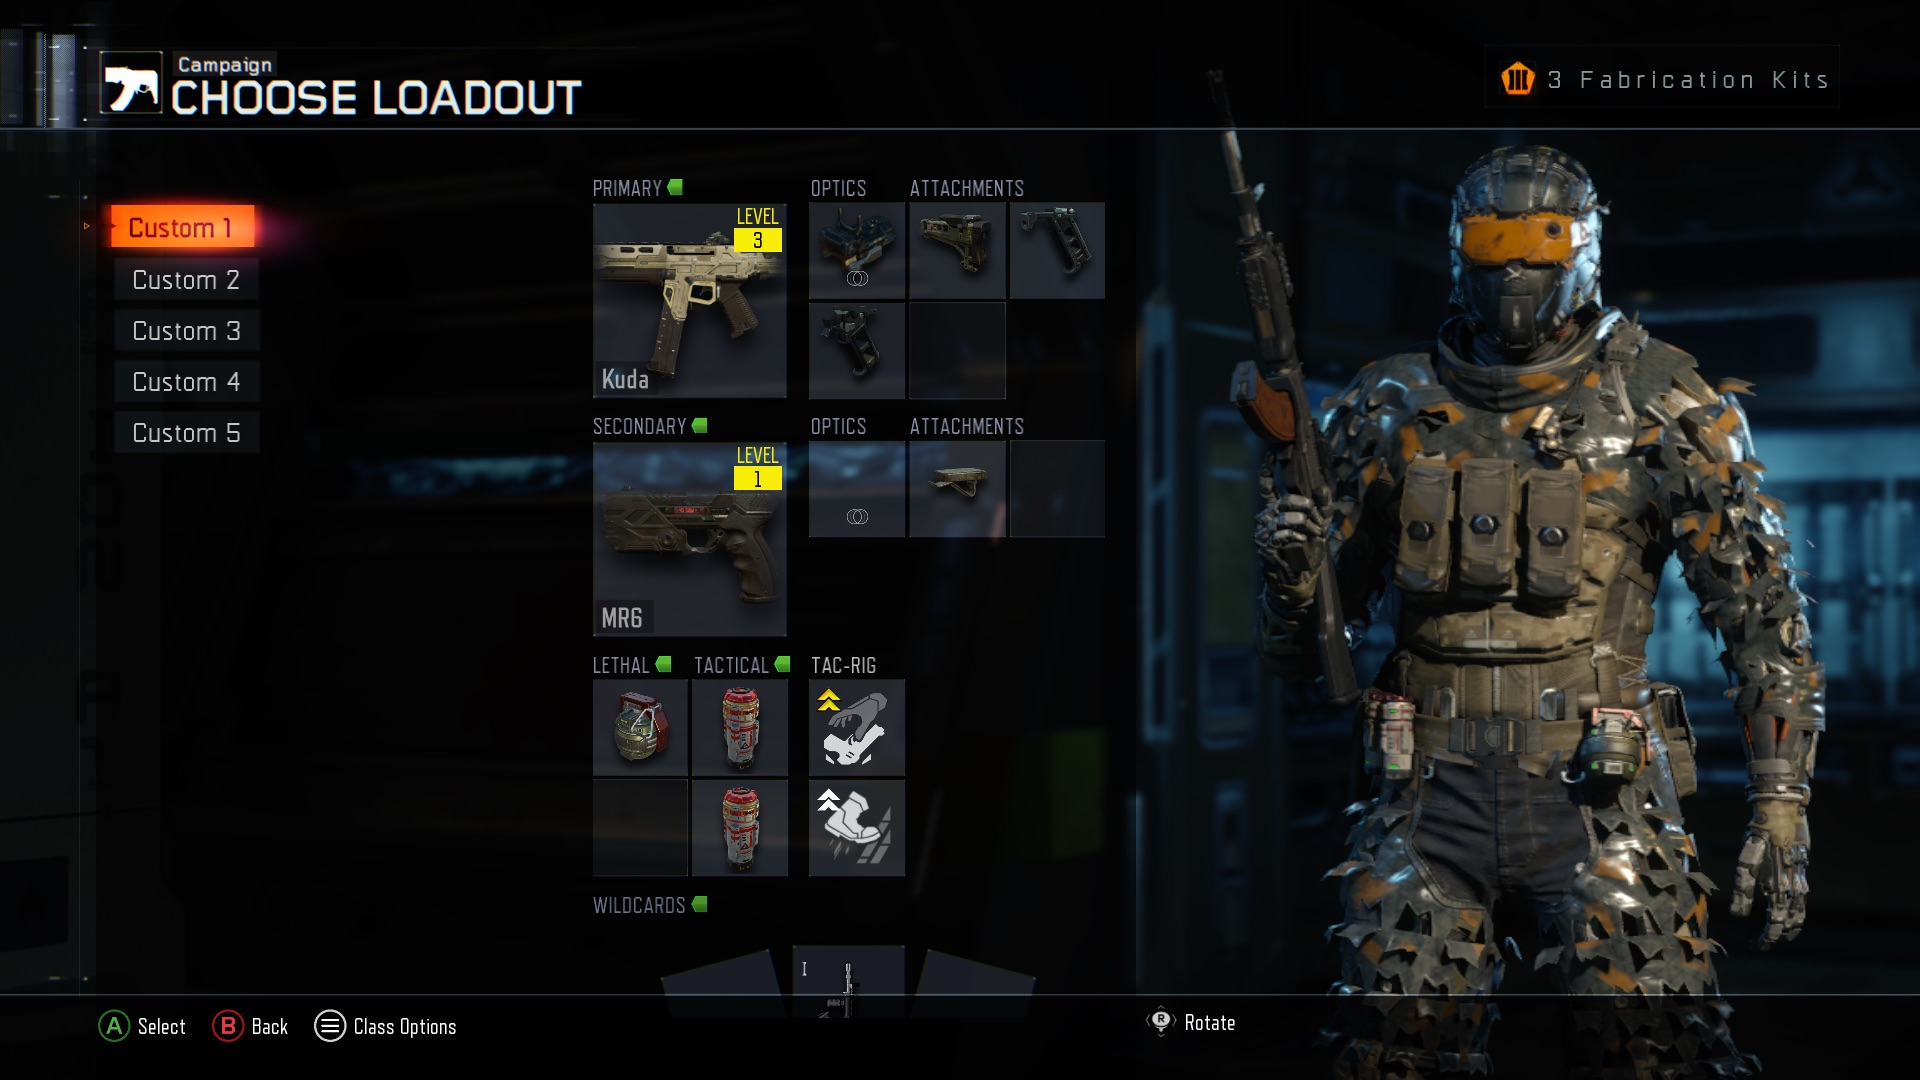 You should play the Call of Duty: Black Ops 3 campaign, seriously.